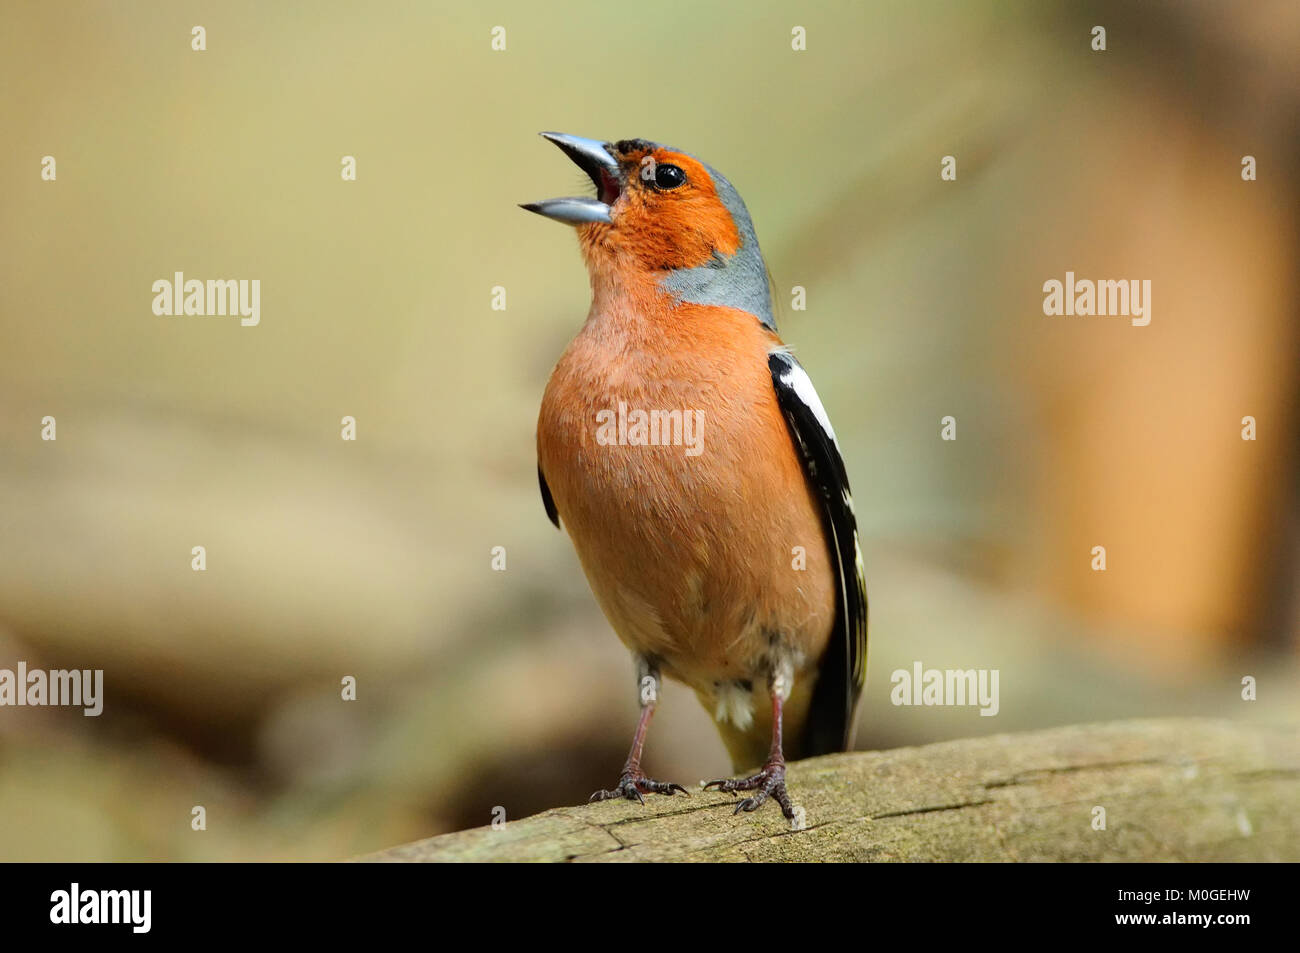 Chaffinch in the spring loudly sings, sitting on a fallen tree. - Stock Image